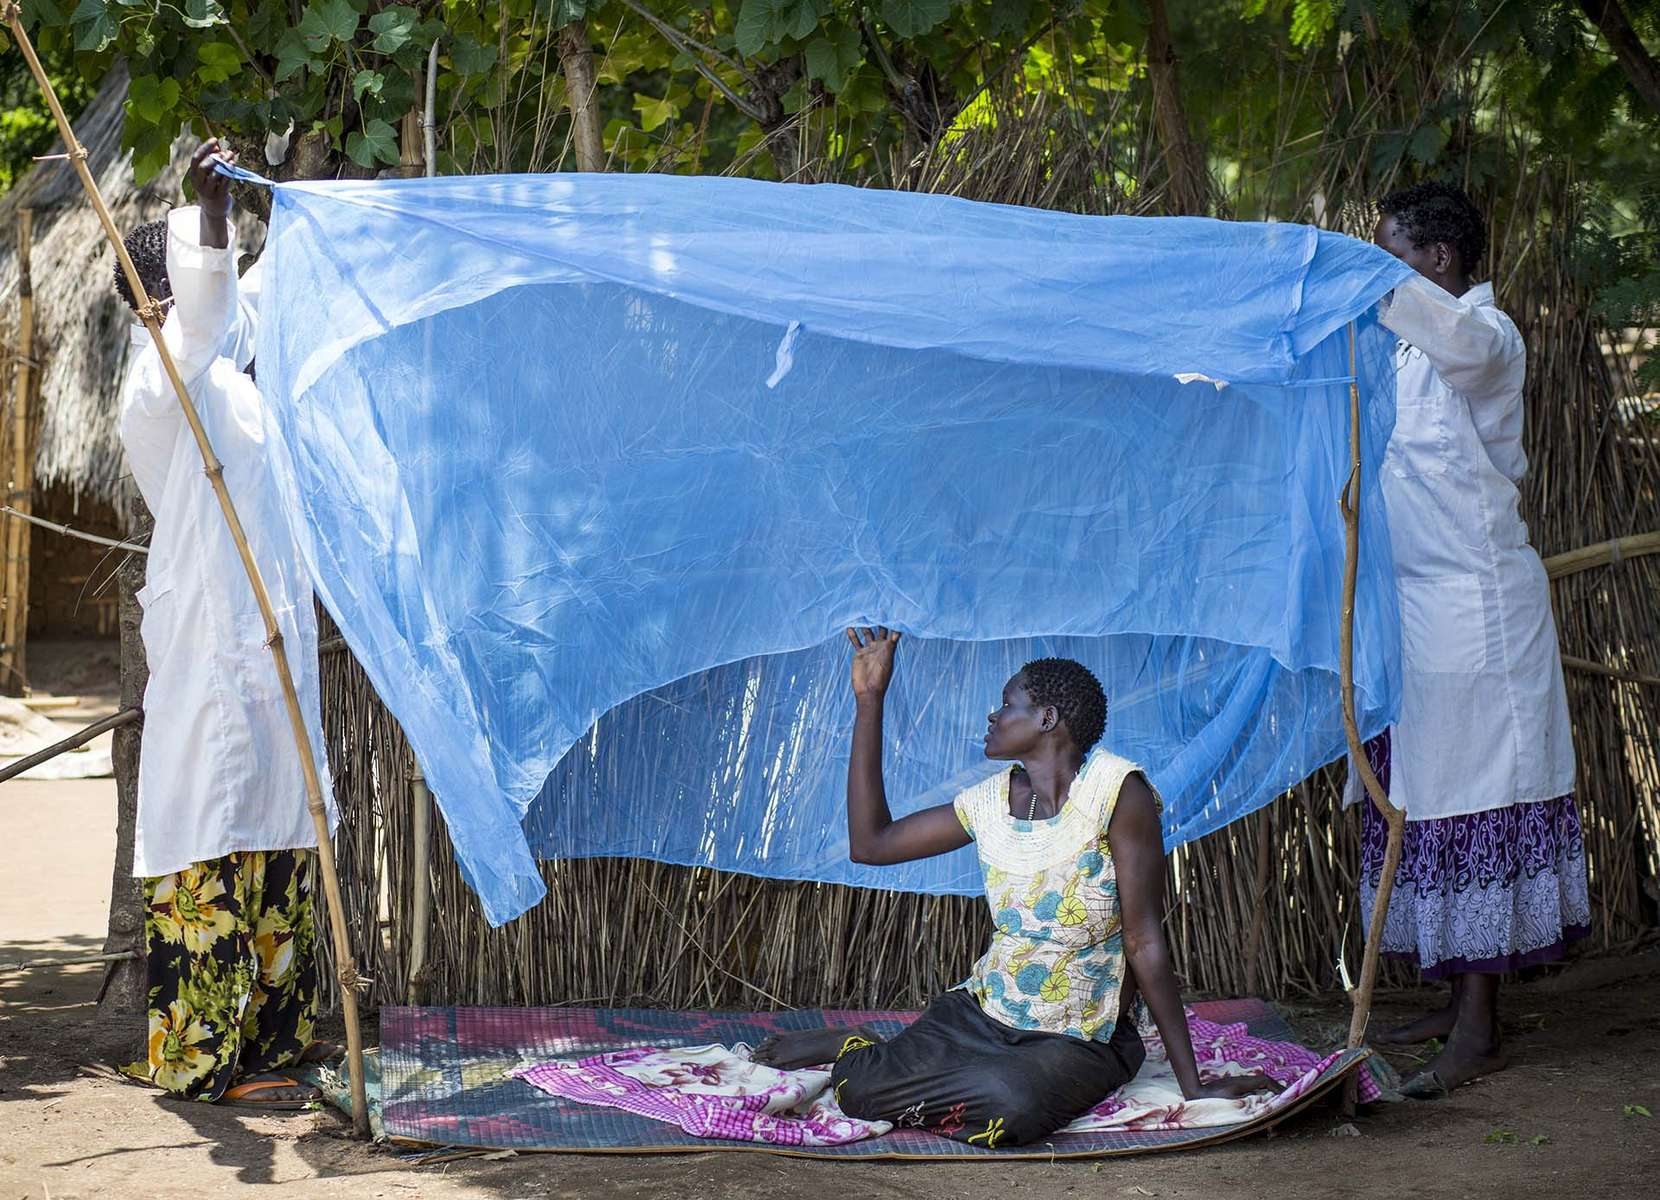 With the help of a pregnant woman, health extension workers Achang Objo, left, and Abang Obang, give a live demonstration of the proper use of mosquito net to the residents of Itang Woreda in Gambella State of Ethiopia 29 August 2013.